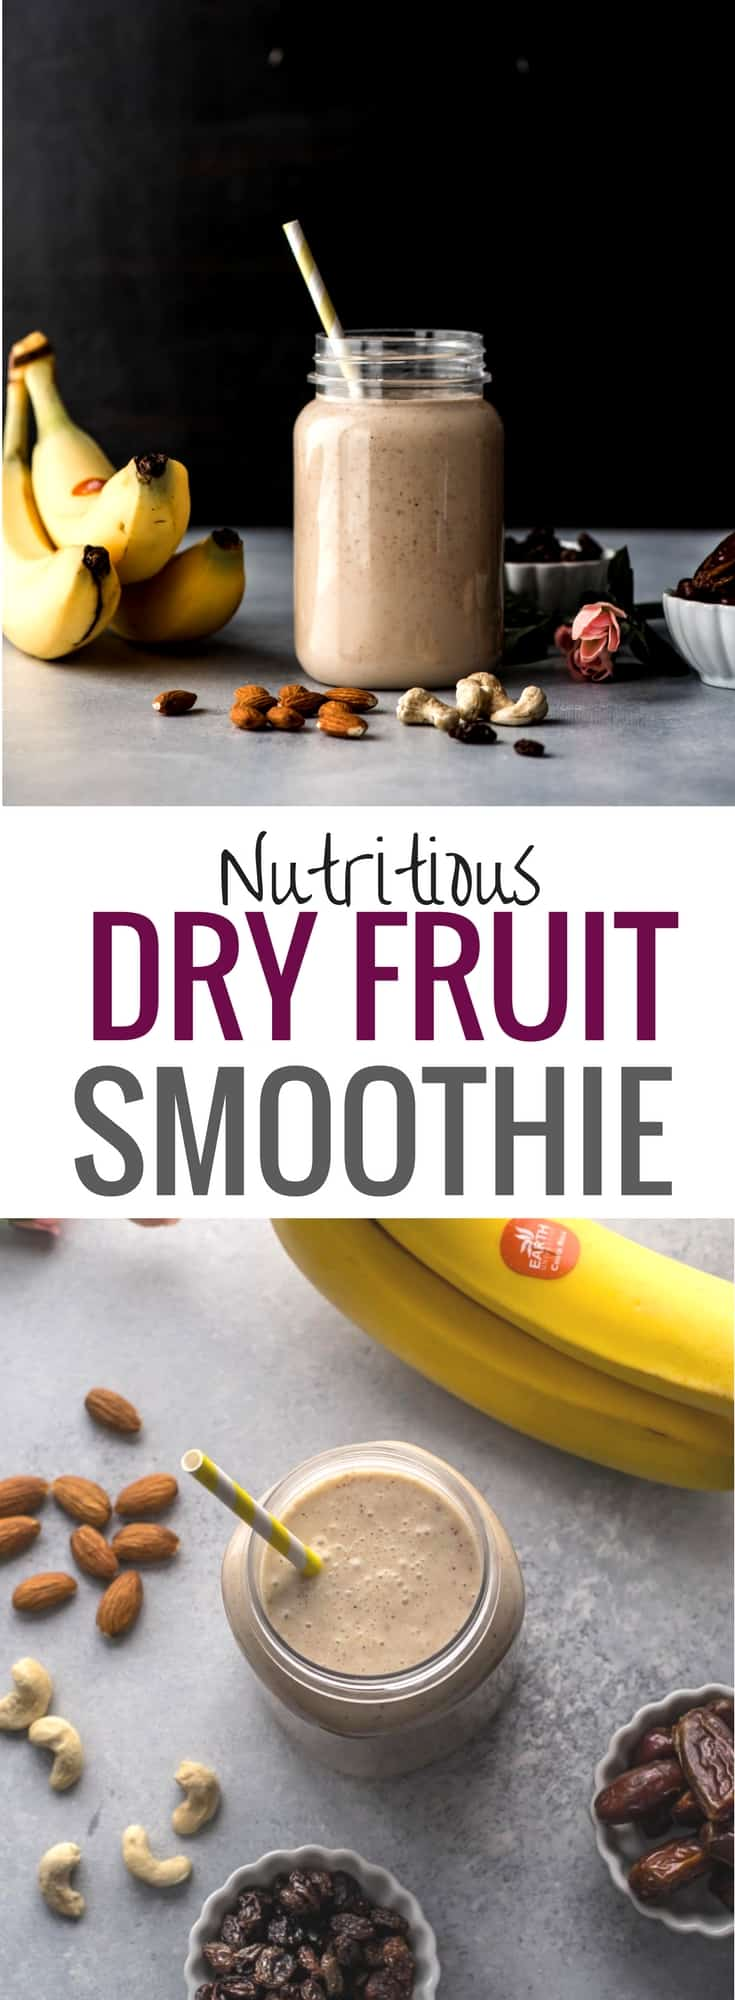 Dry fruits smoothie is a great way to combine nutritious milk and dry fruits to create a wholesome meal for any time of the day.Popularly known in India as dry fruits milkshake, this smoothie is a kid-favorite #MyMilkMyWay #CollectiveBias #sponsored #Indiancuisine #healthyindianrecipes #indianvegetarianrecipes #ethniccuisine #worldcuisine #indianfood #milkshake #dryfruits